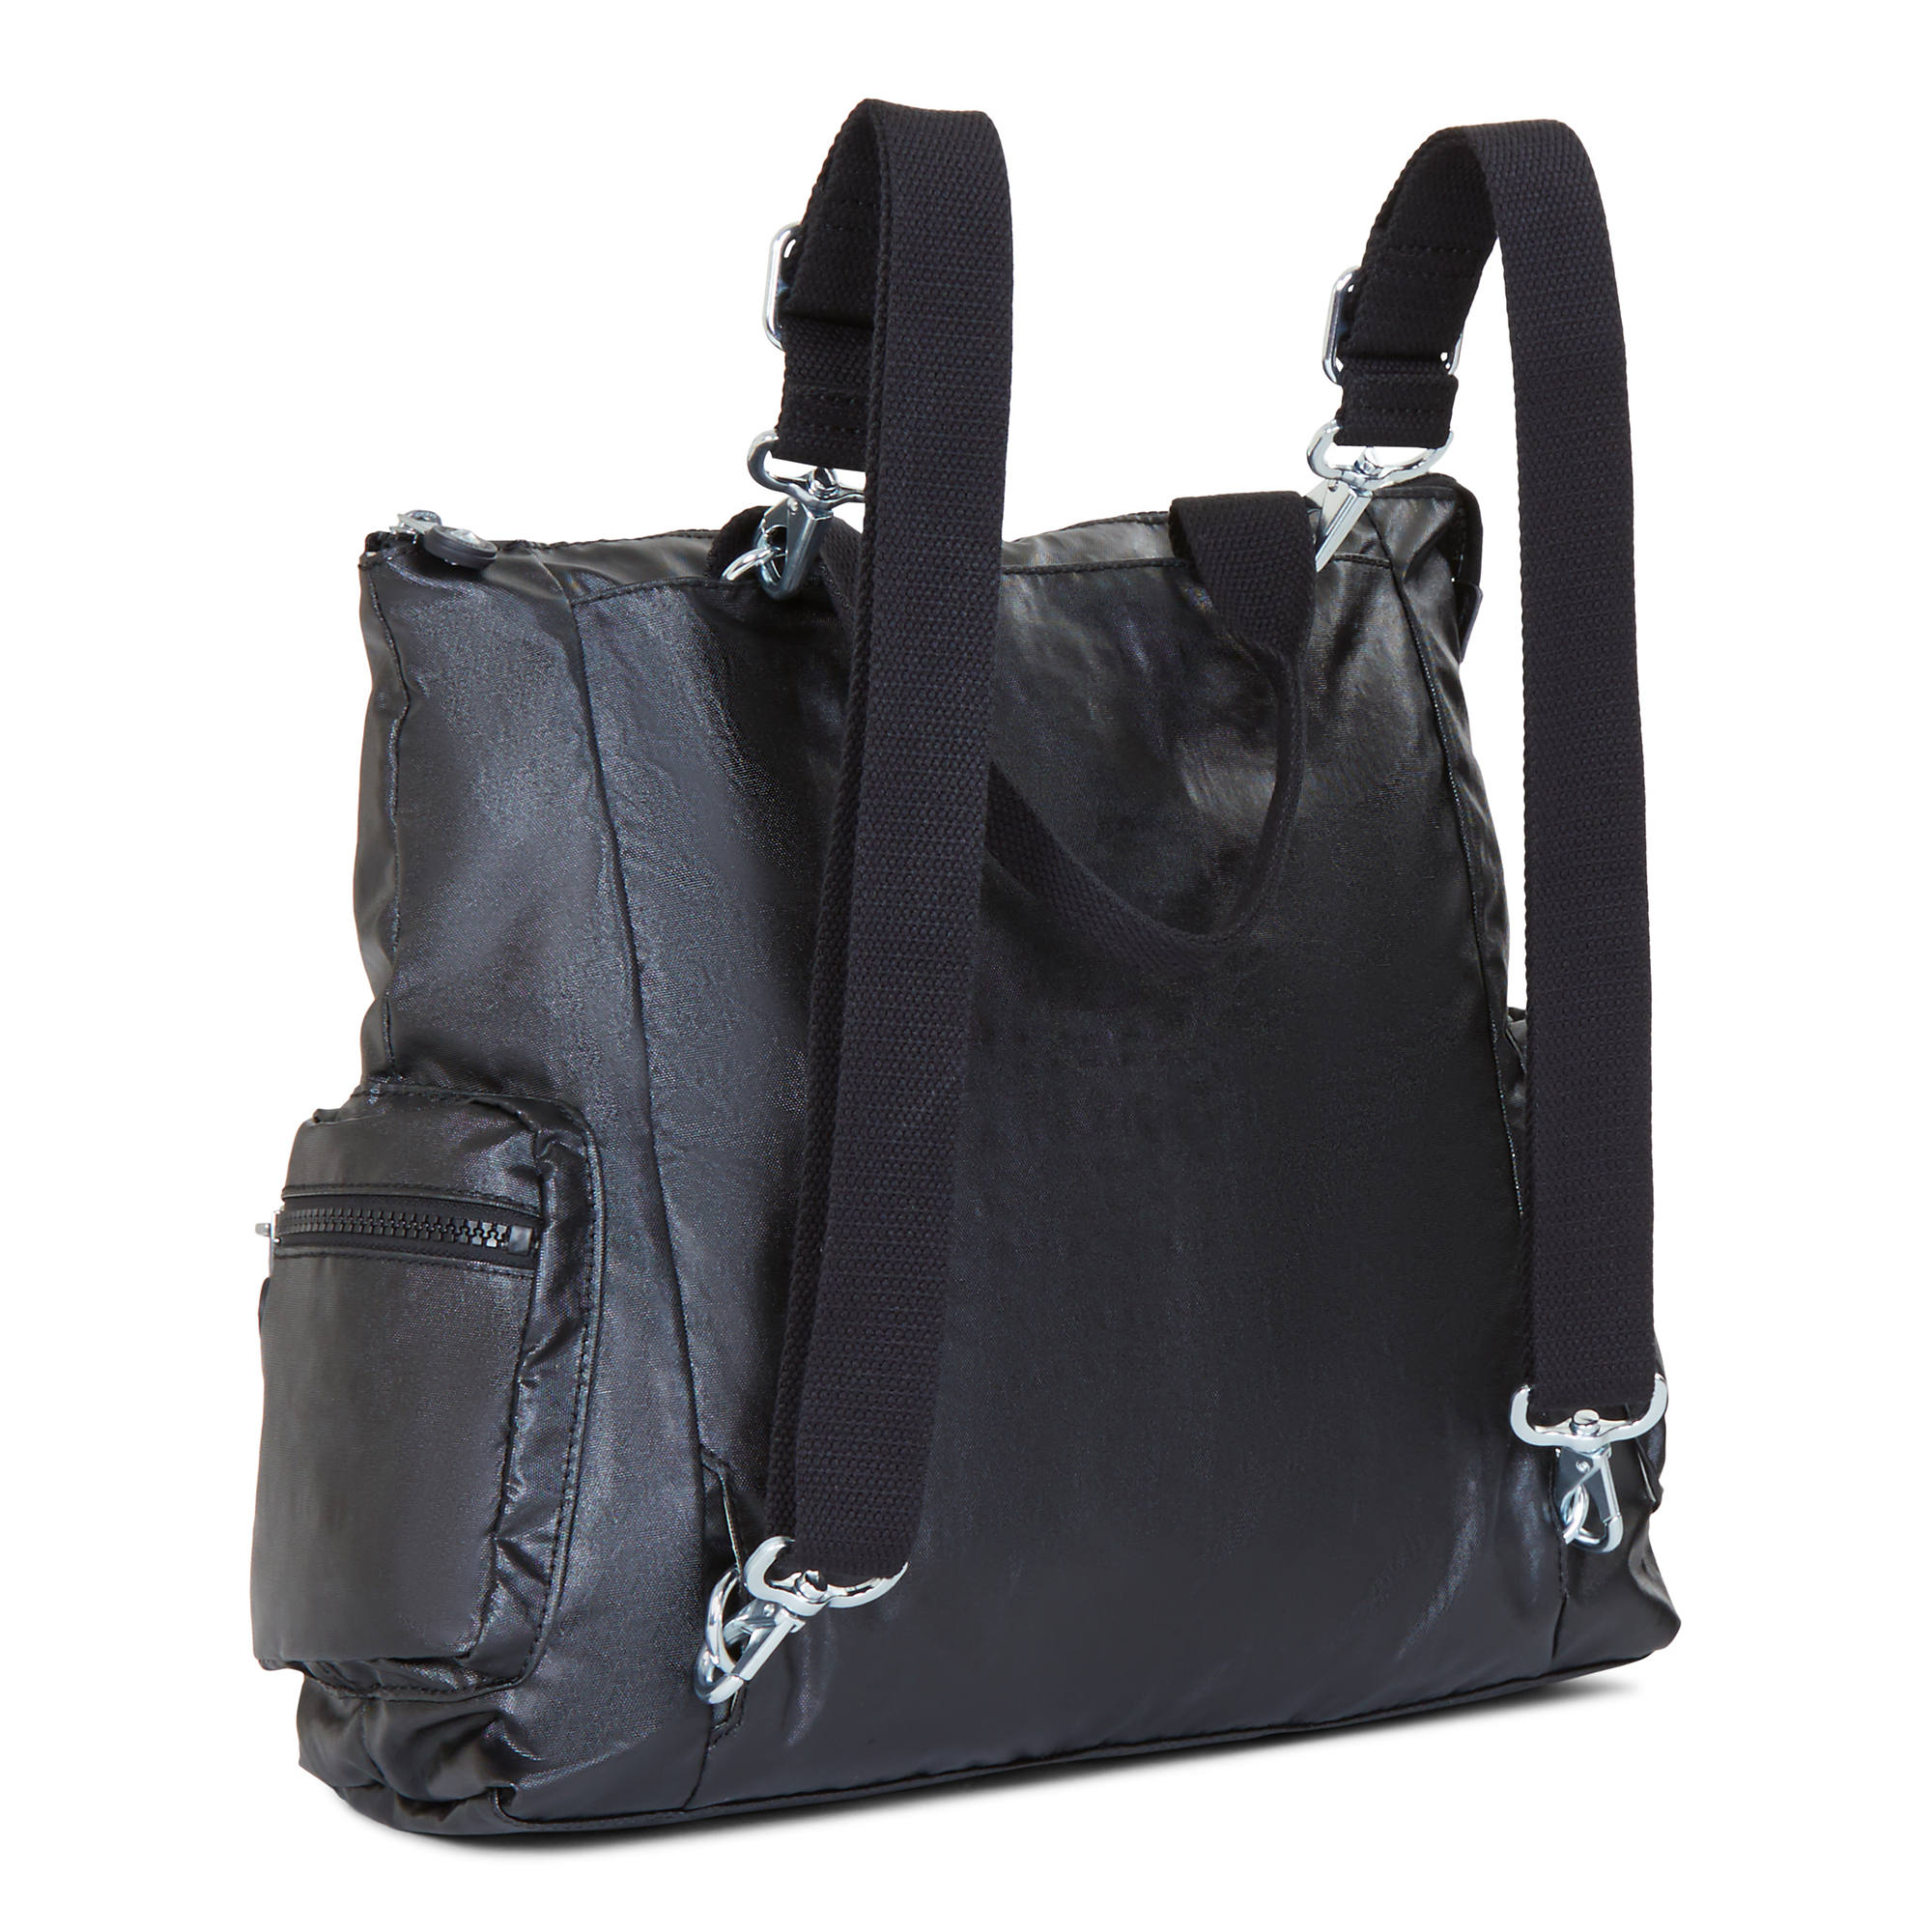 Alvy 2 In 1 Convertible Tote Bag Backpack Lacquer Black Large